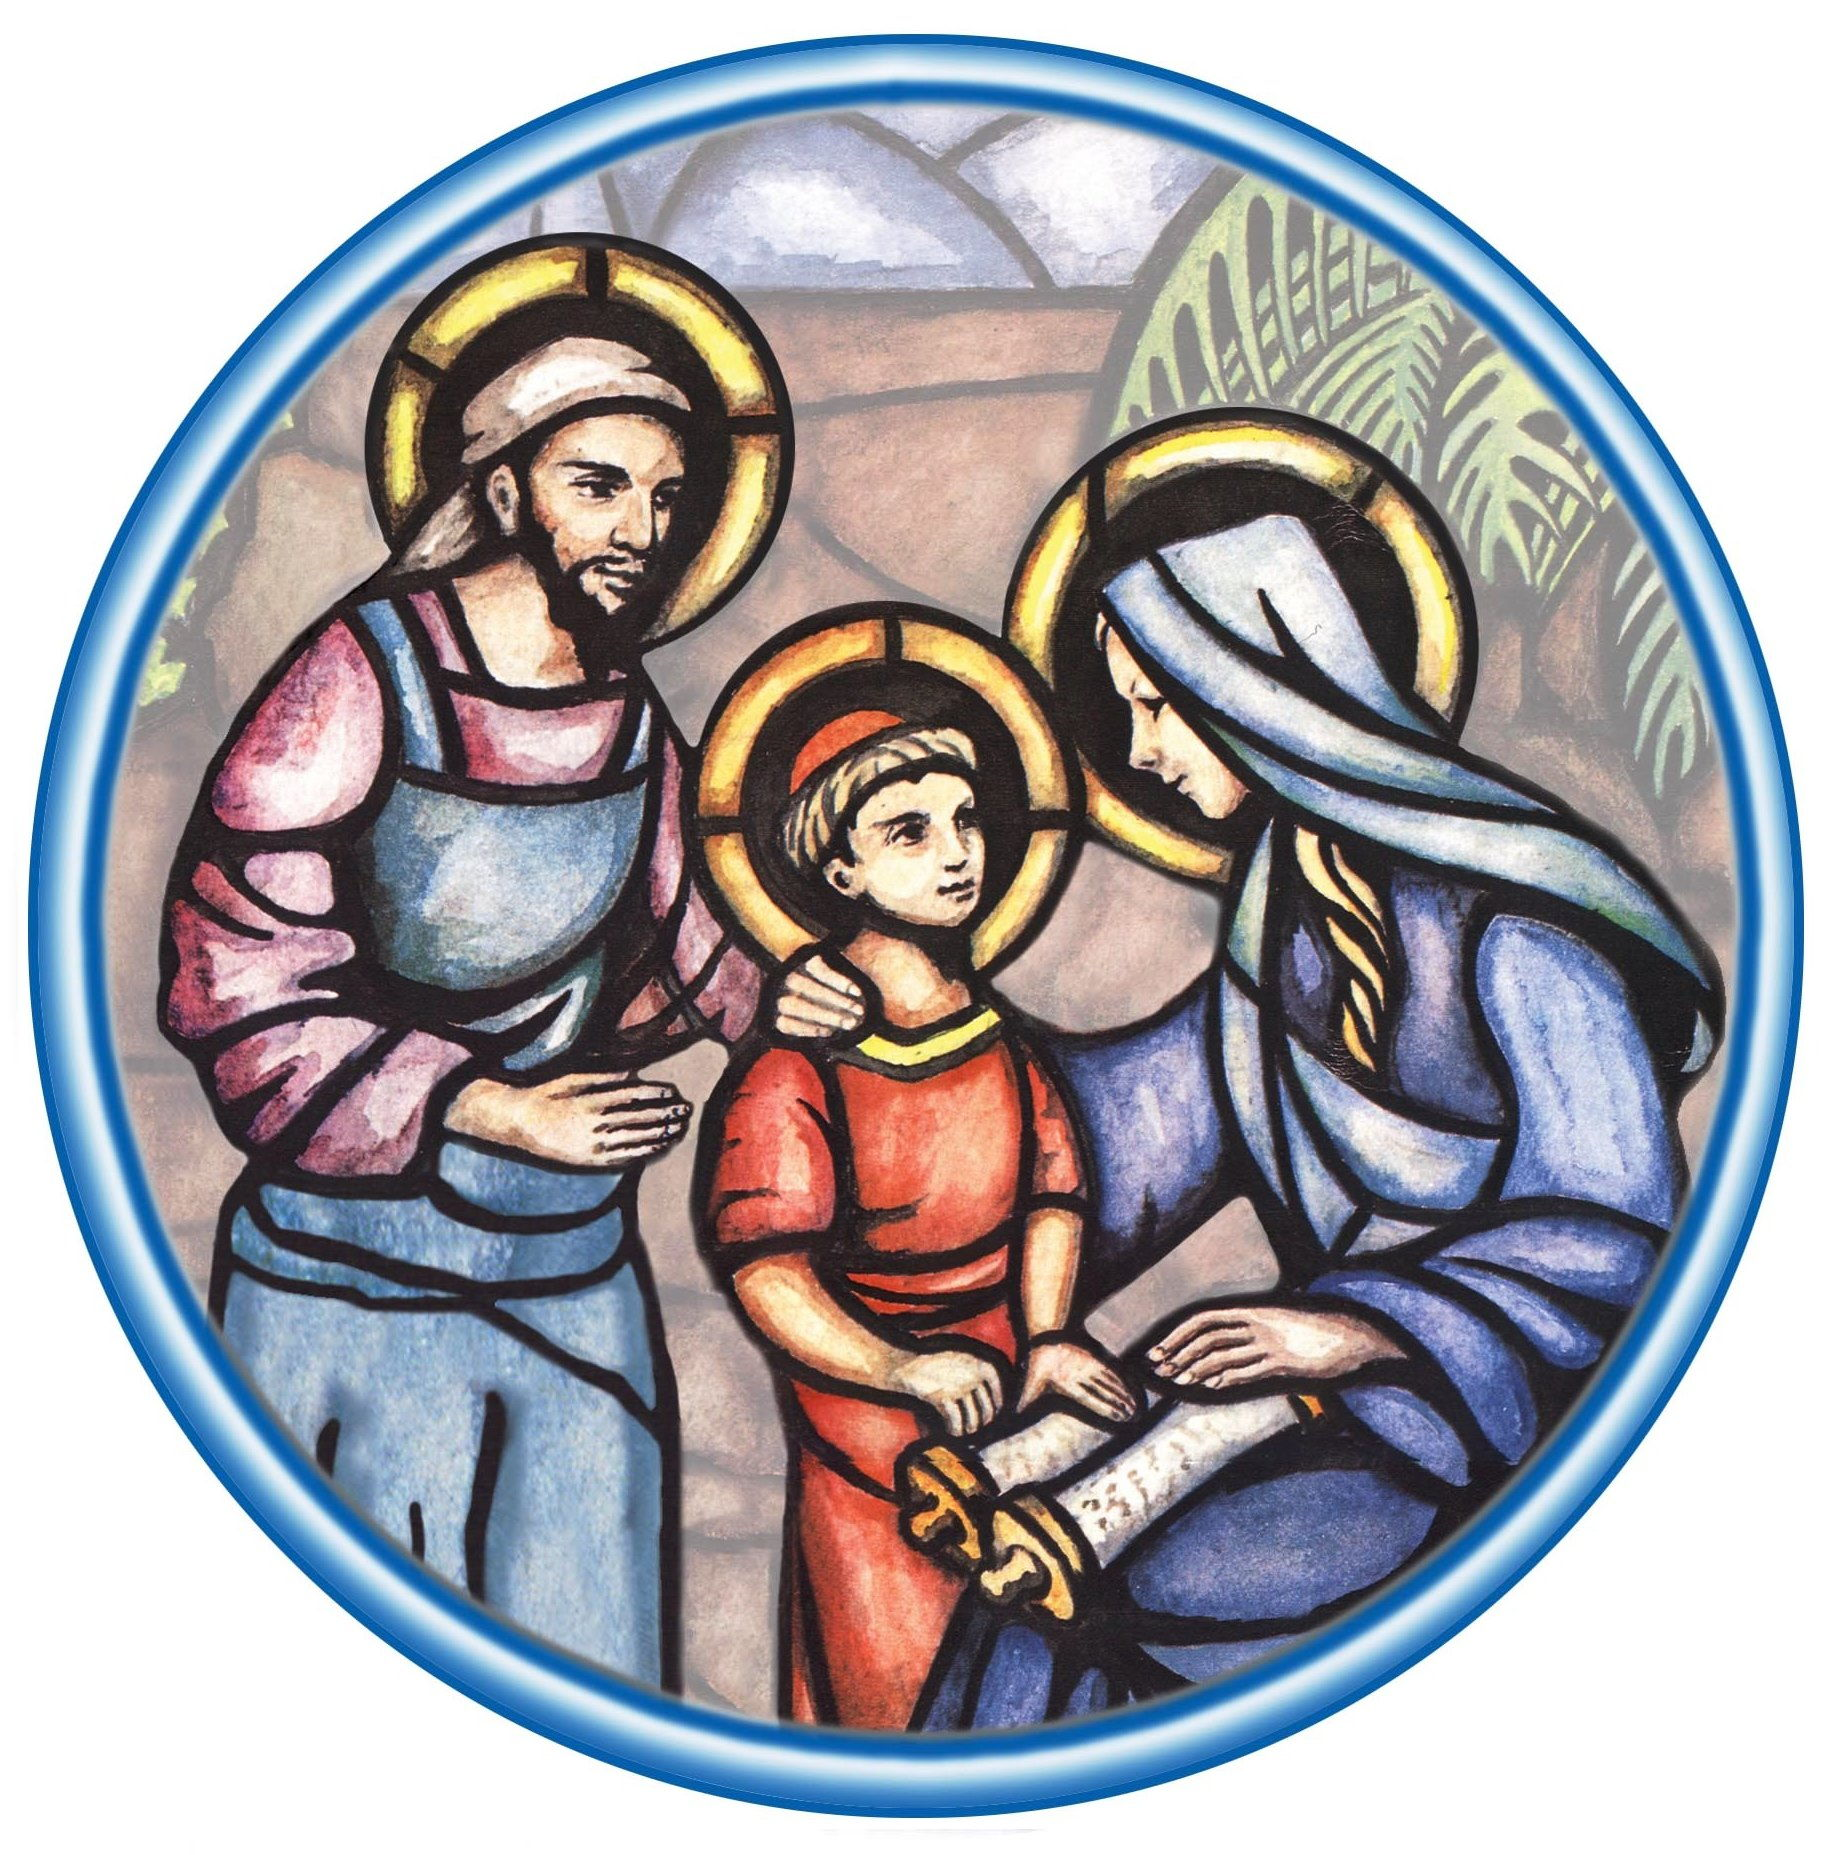 This is the logo for the North American Province of the Missionaries of the Holy Family.